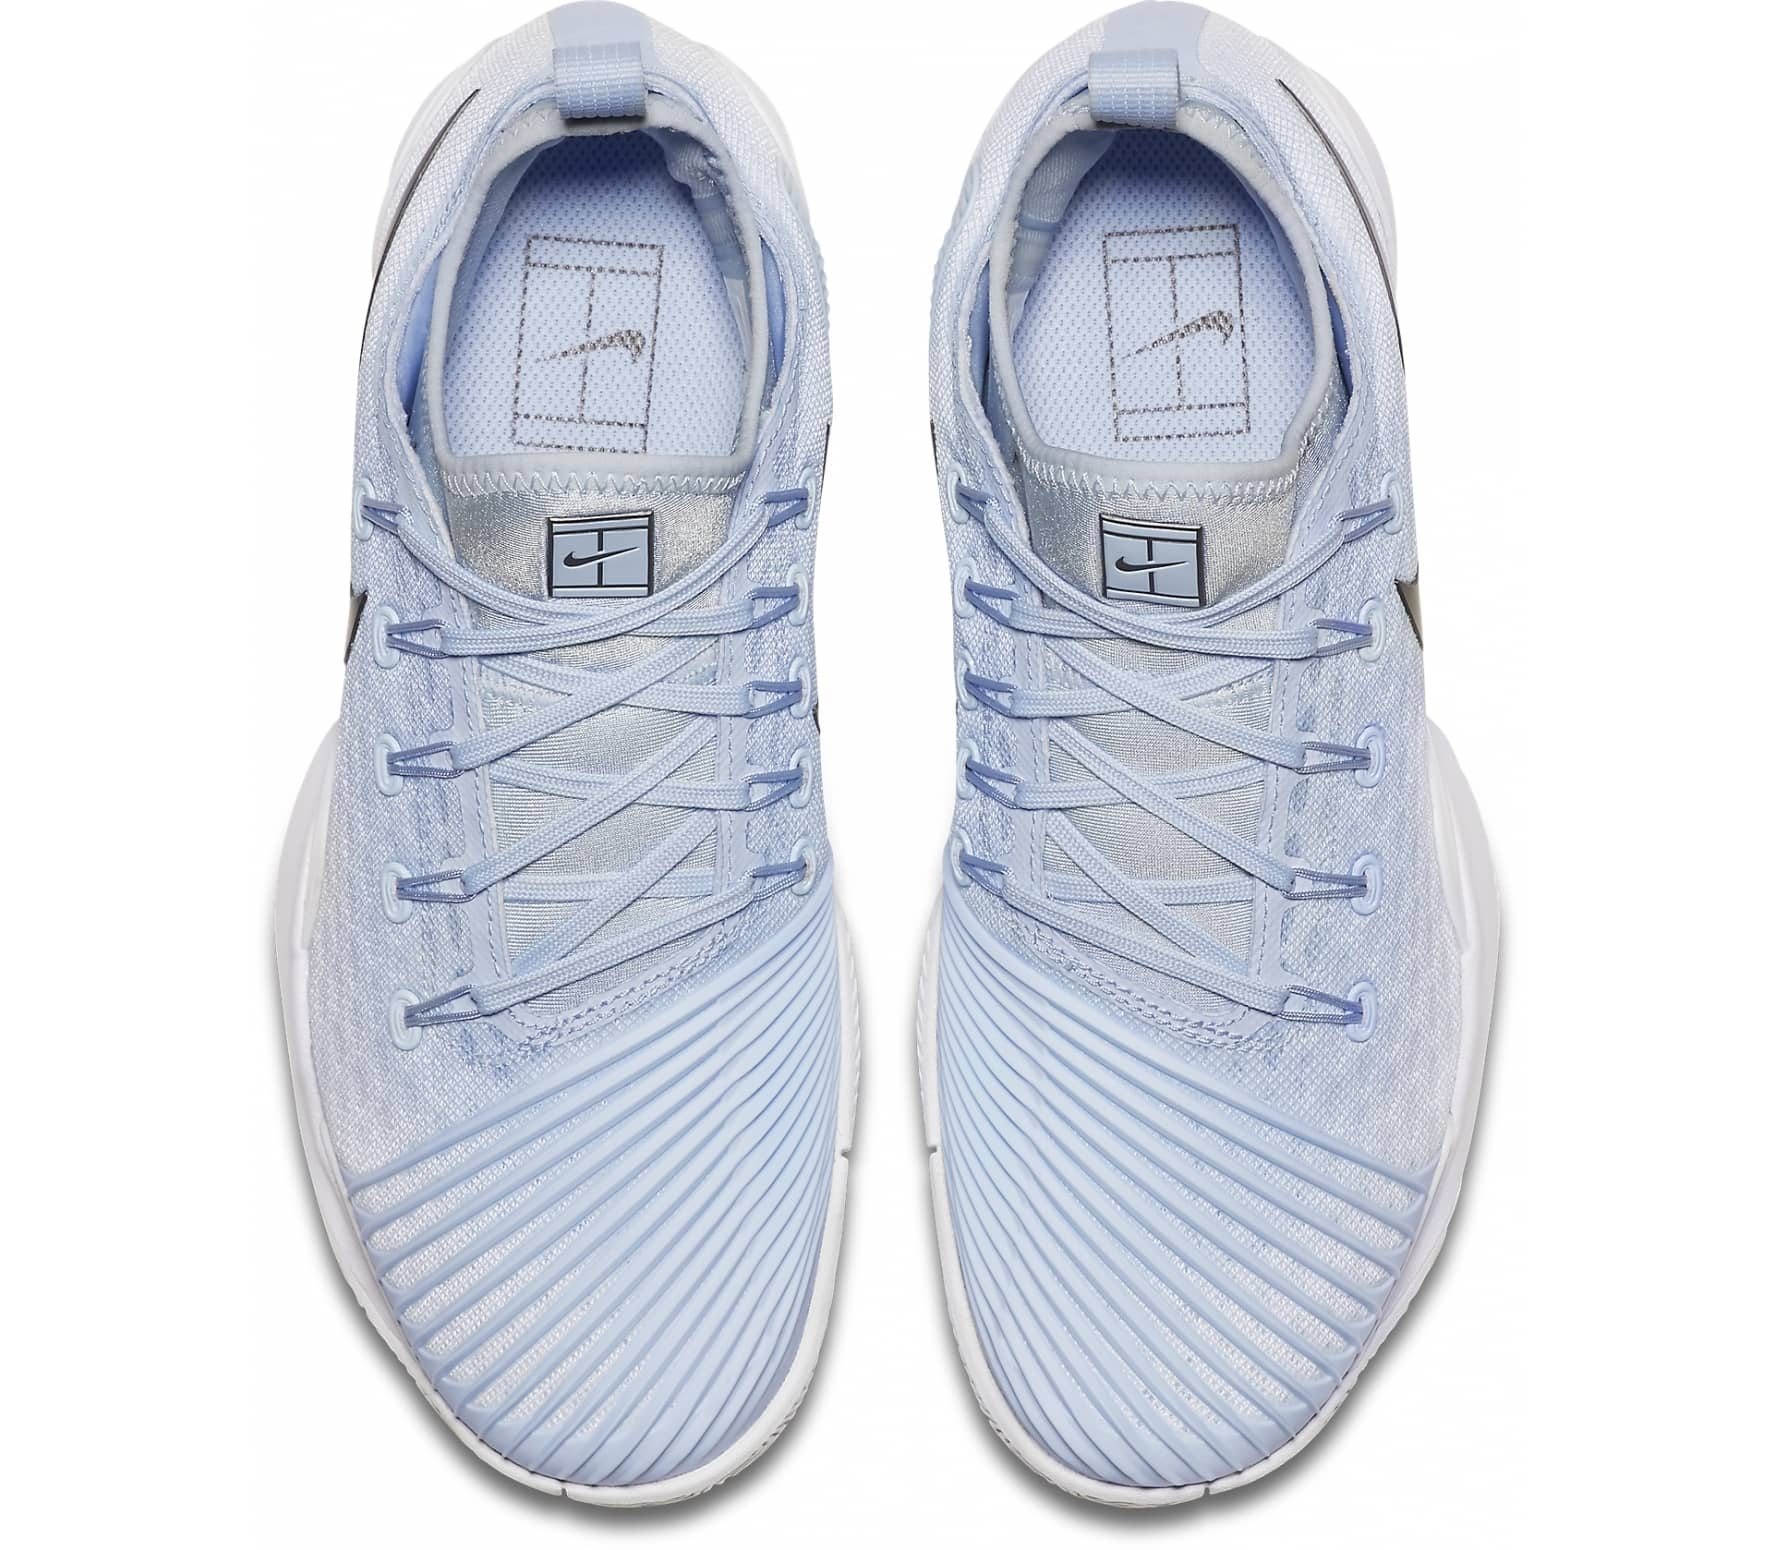 Nike Air Zoom Ultrafly Low women's tennis shoes (bluewhite)